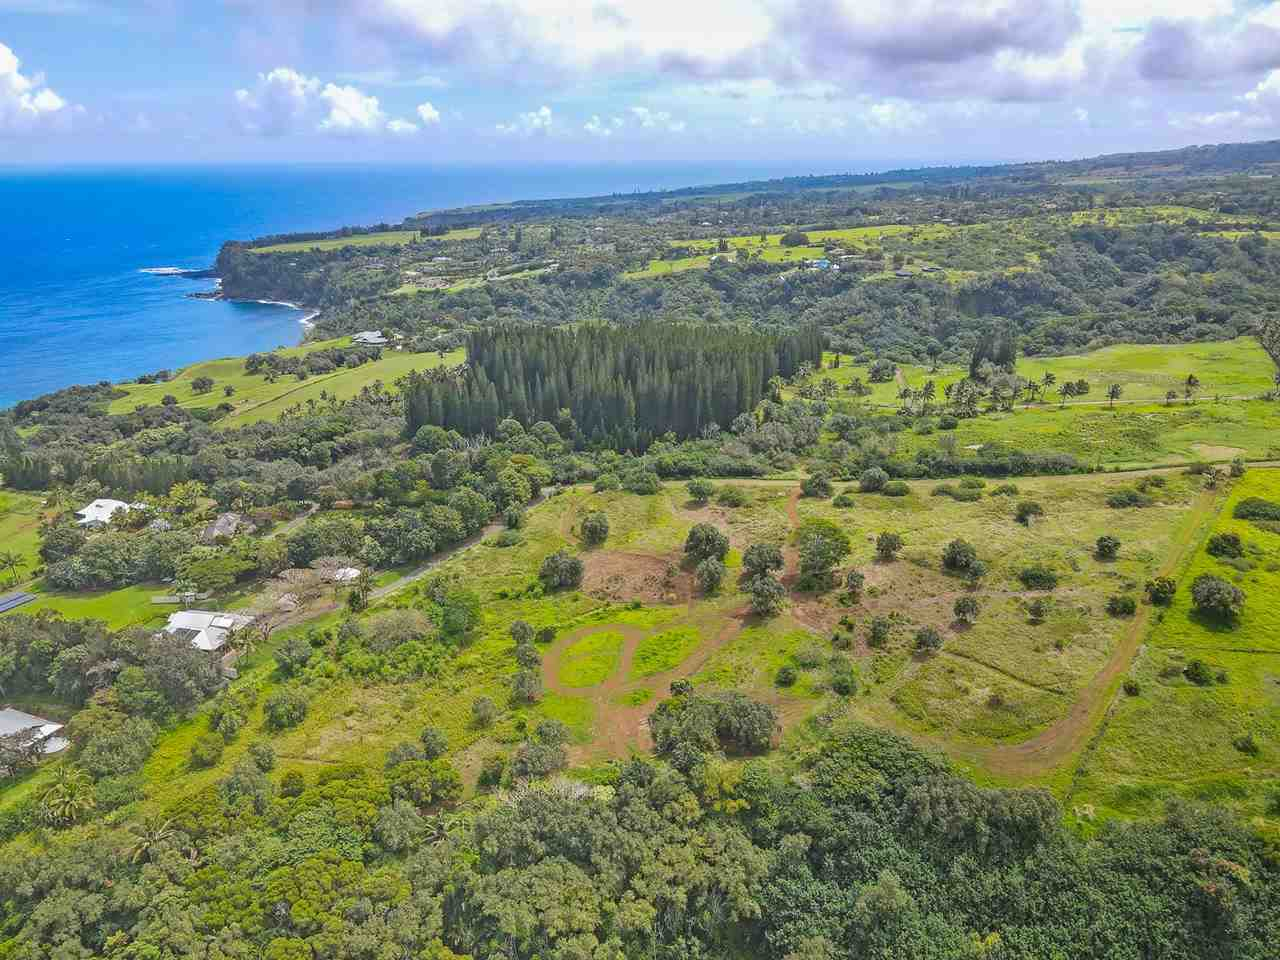 Manawai Pl Lot 3 Haiku, Hi 96708 vacant land - photo 3 of 19